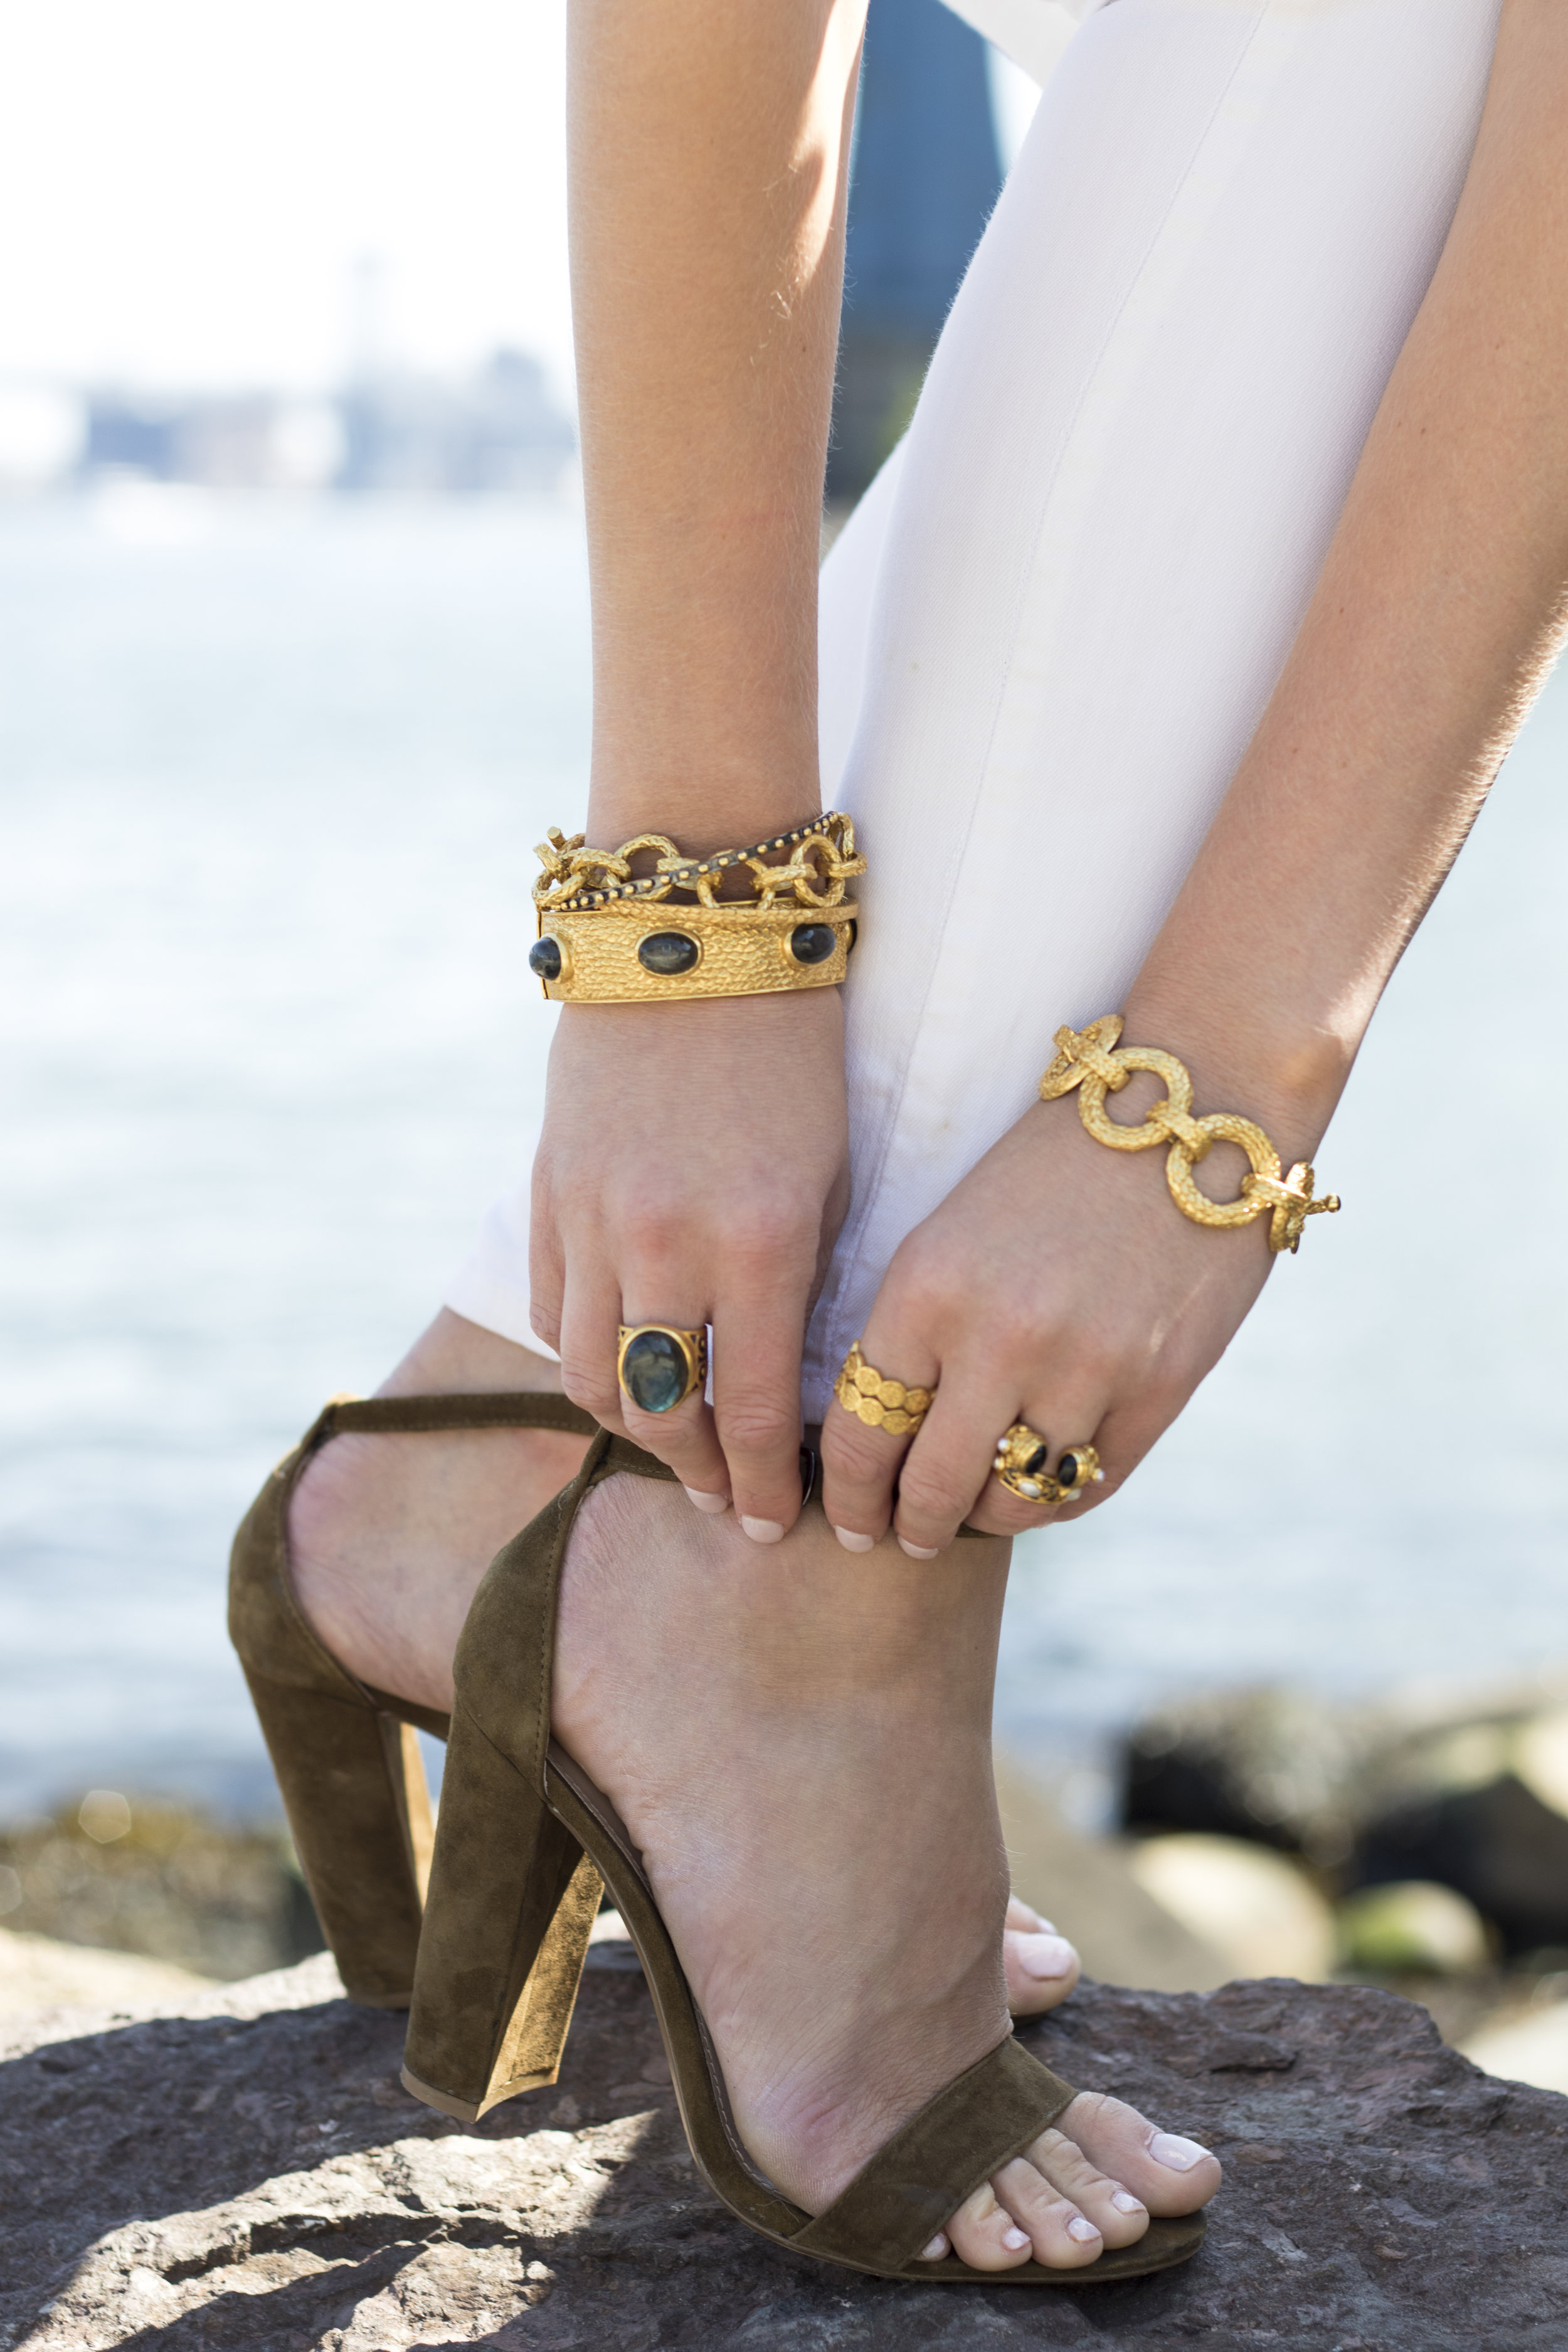 new york city jewelry photographer samantha metell.jpg